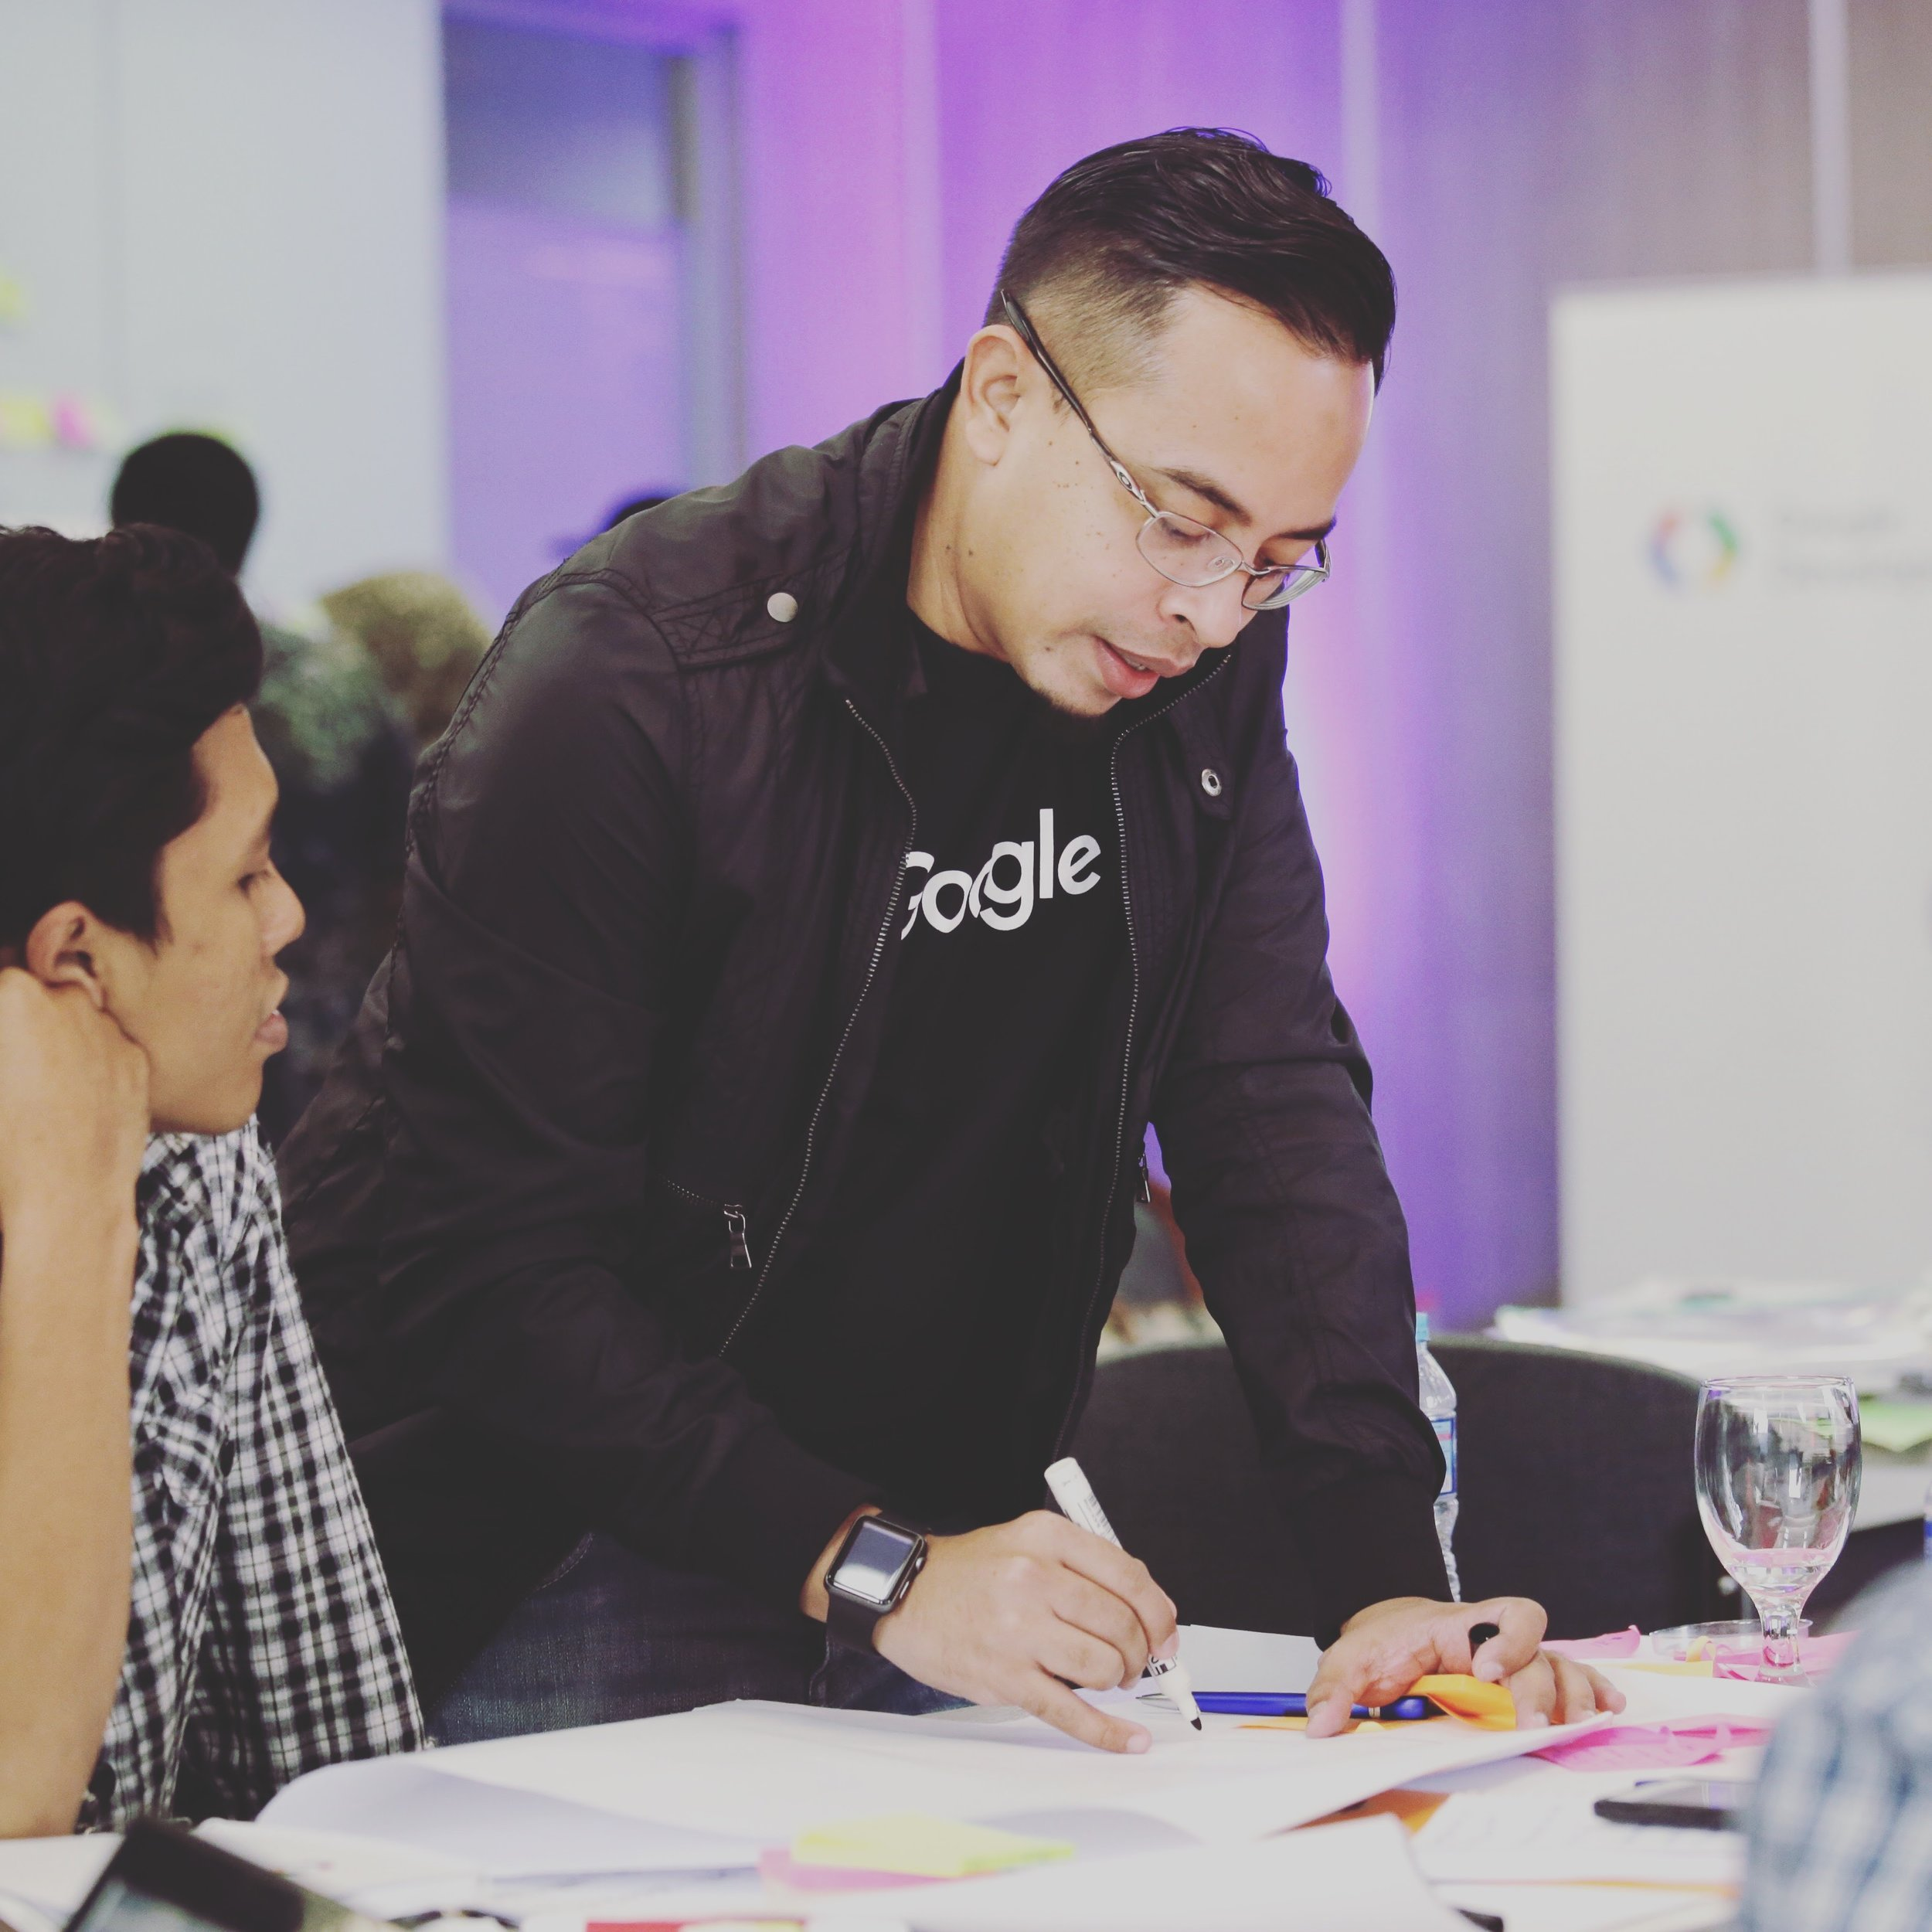 Borrys Hasian was mentoring startups under Google Launchpad Accelerator in October 2016.